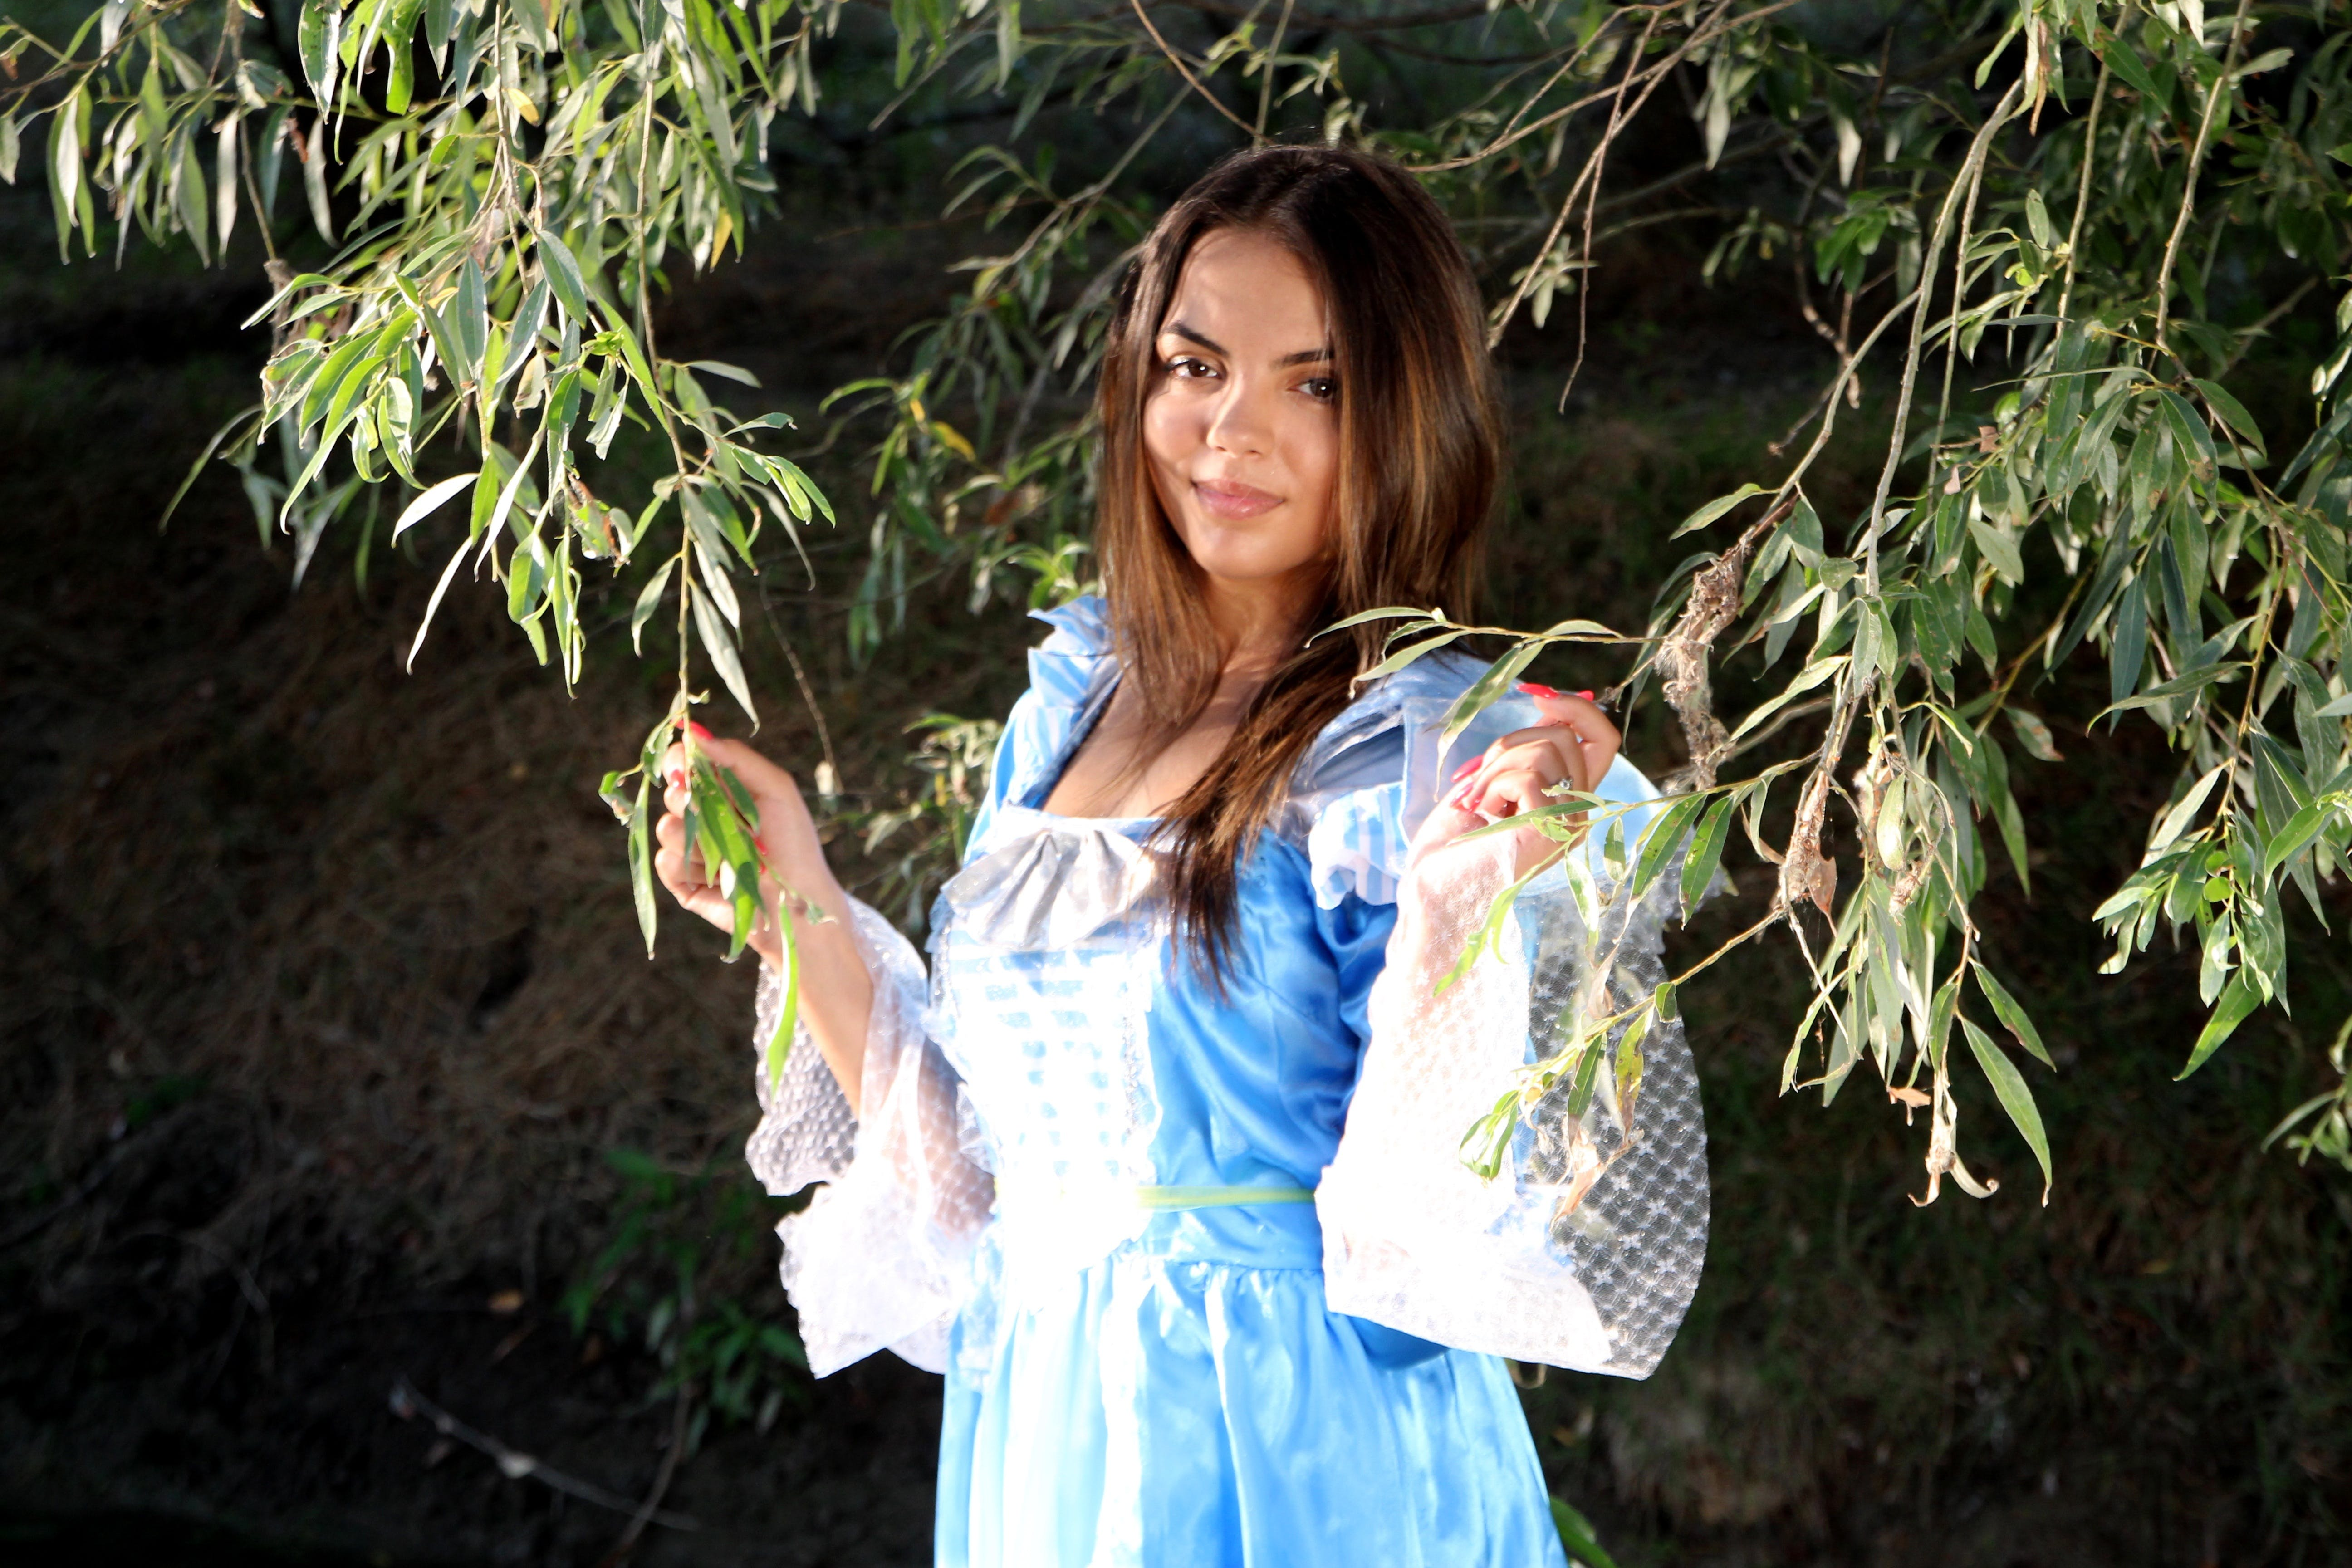 Woman in Blue Dress Holding Tree Branches